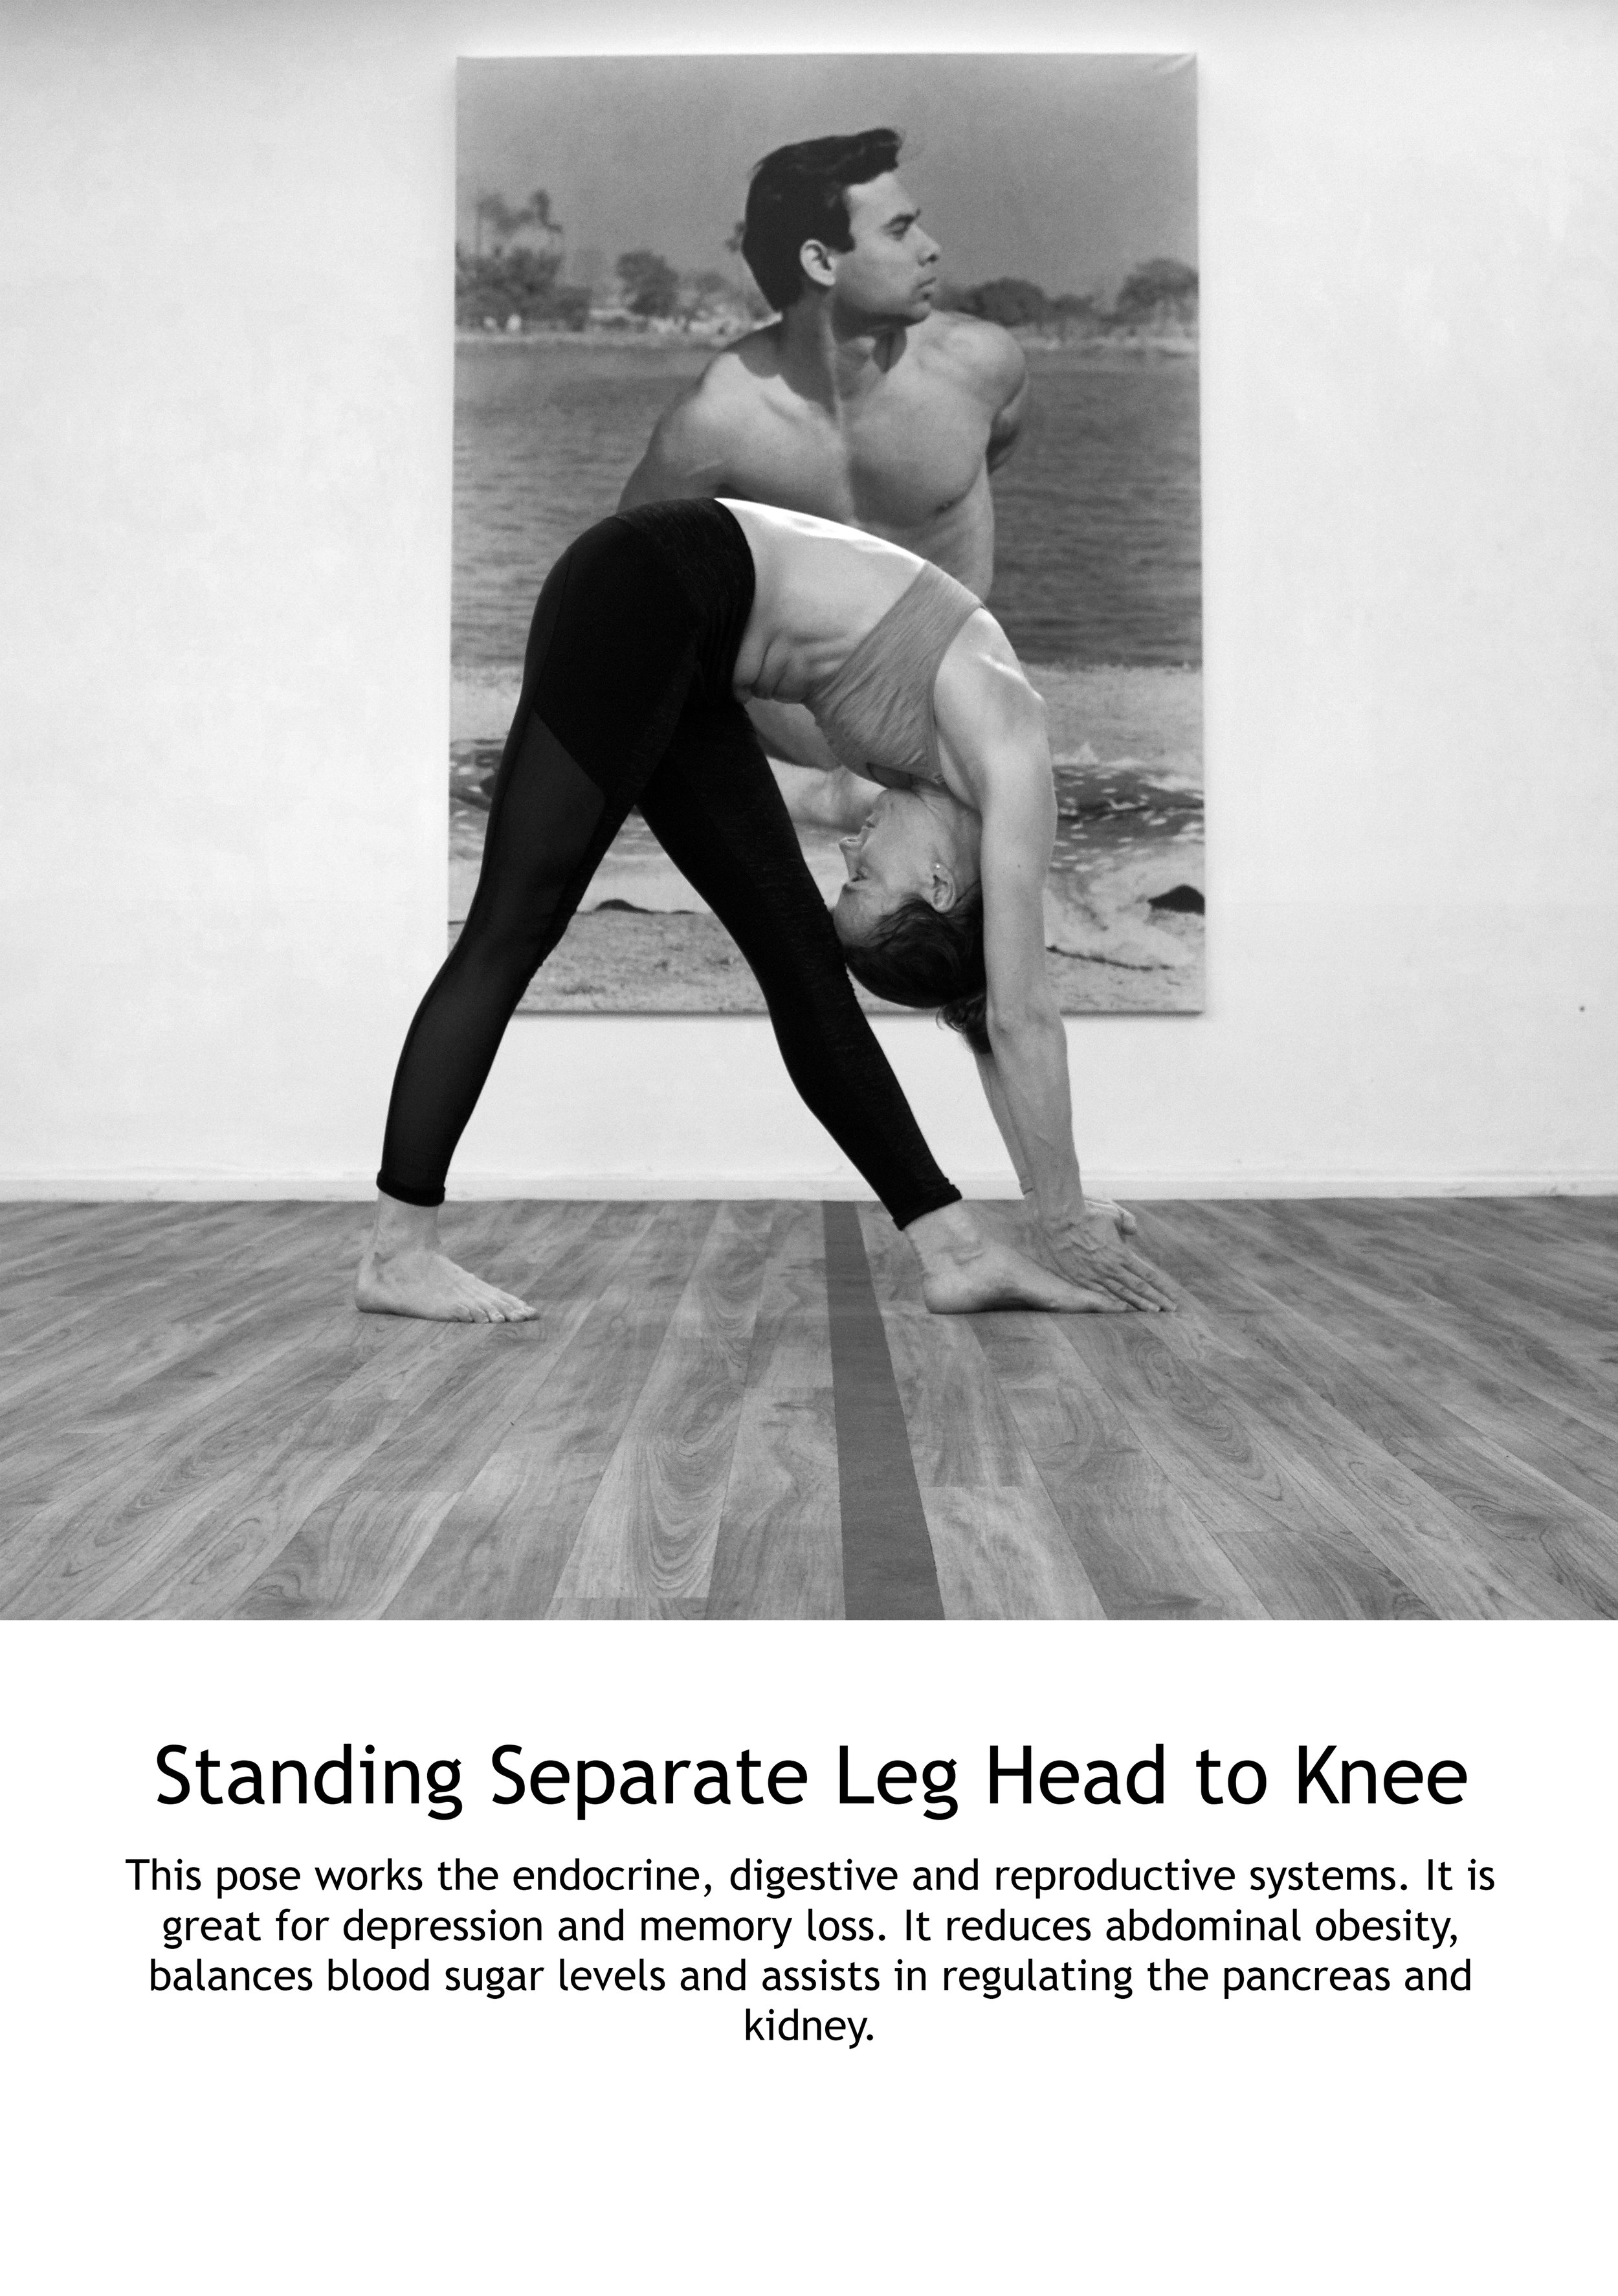 Standing Separate Leg Head to Knee